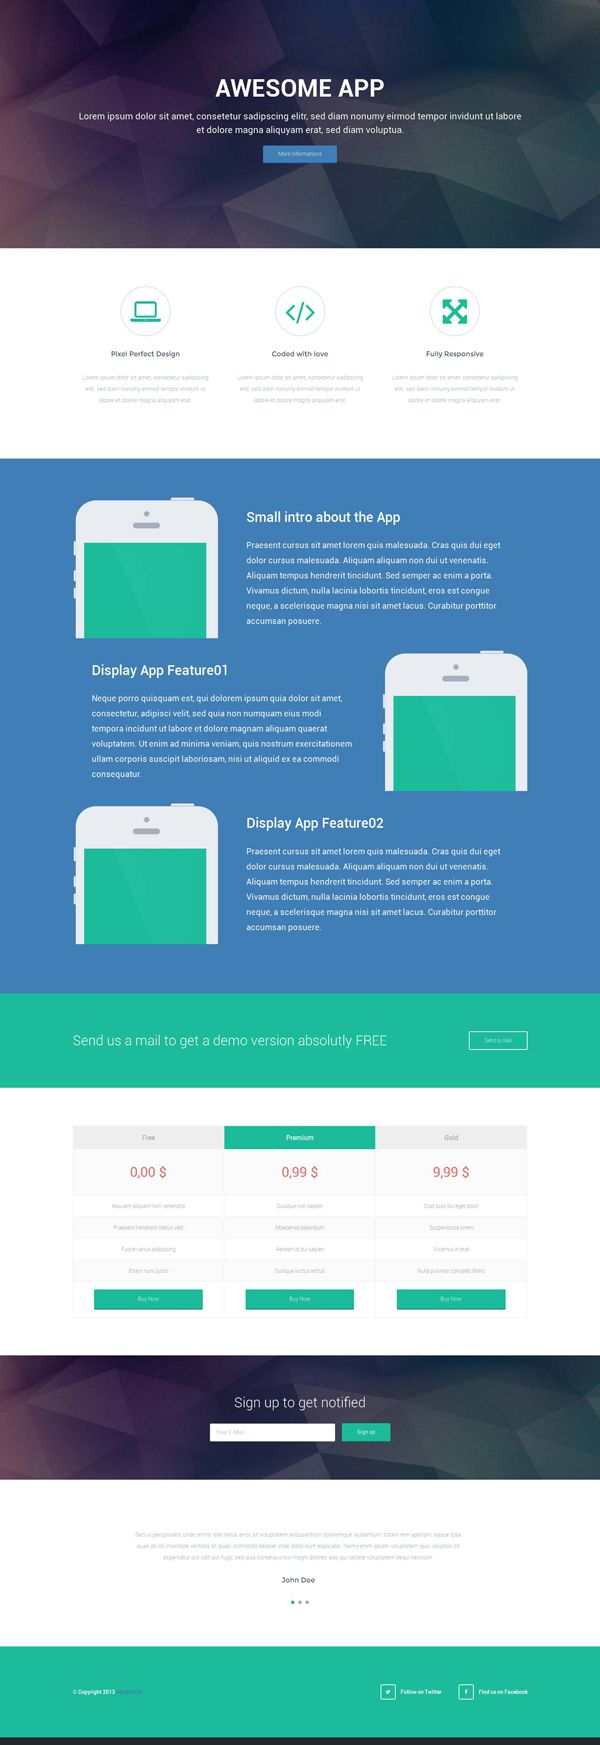 Responsive Landing Page HTML Template Pricing Table Design - Landing page html template